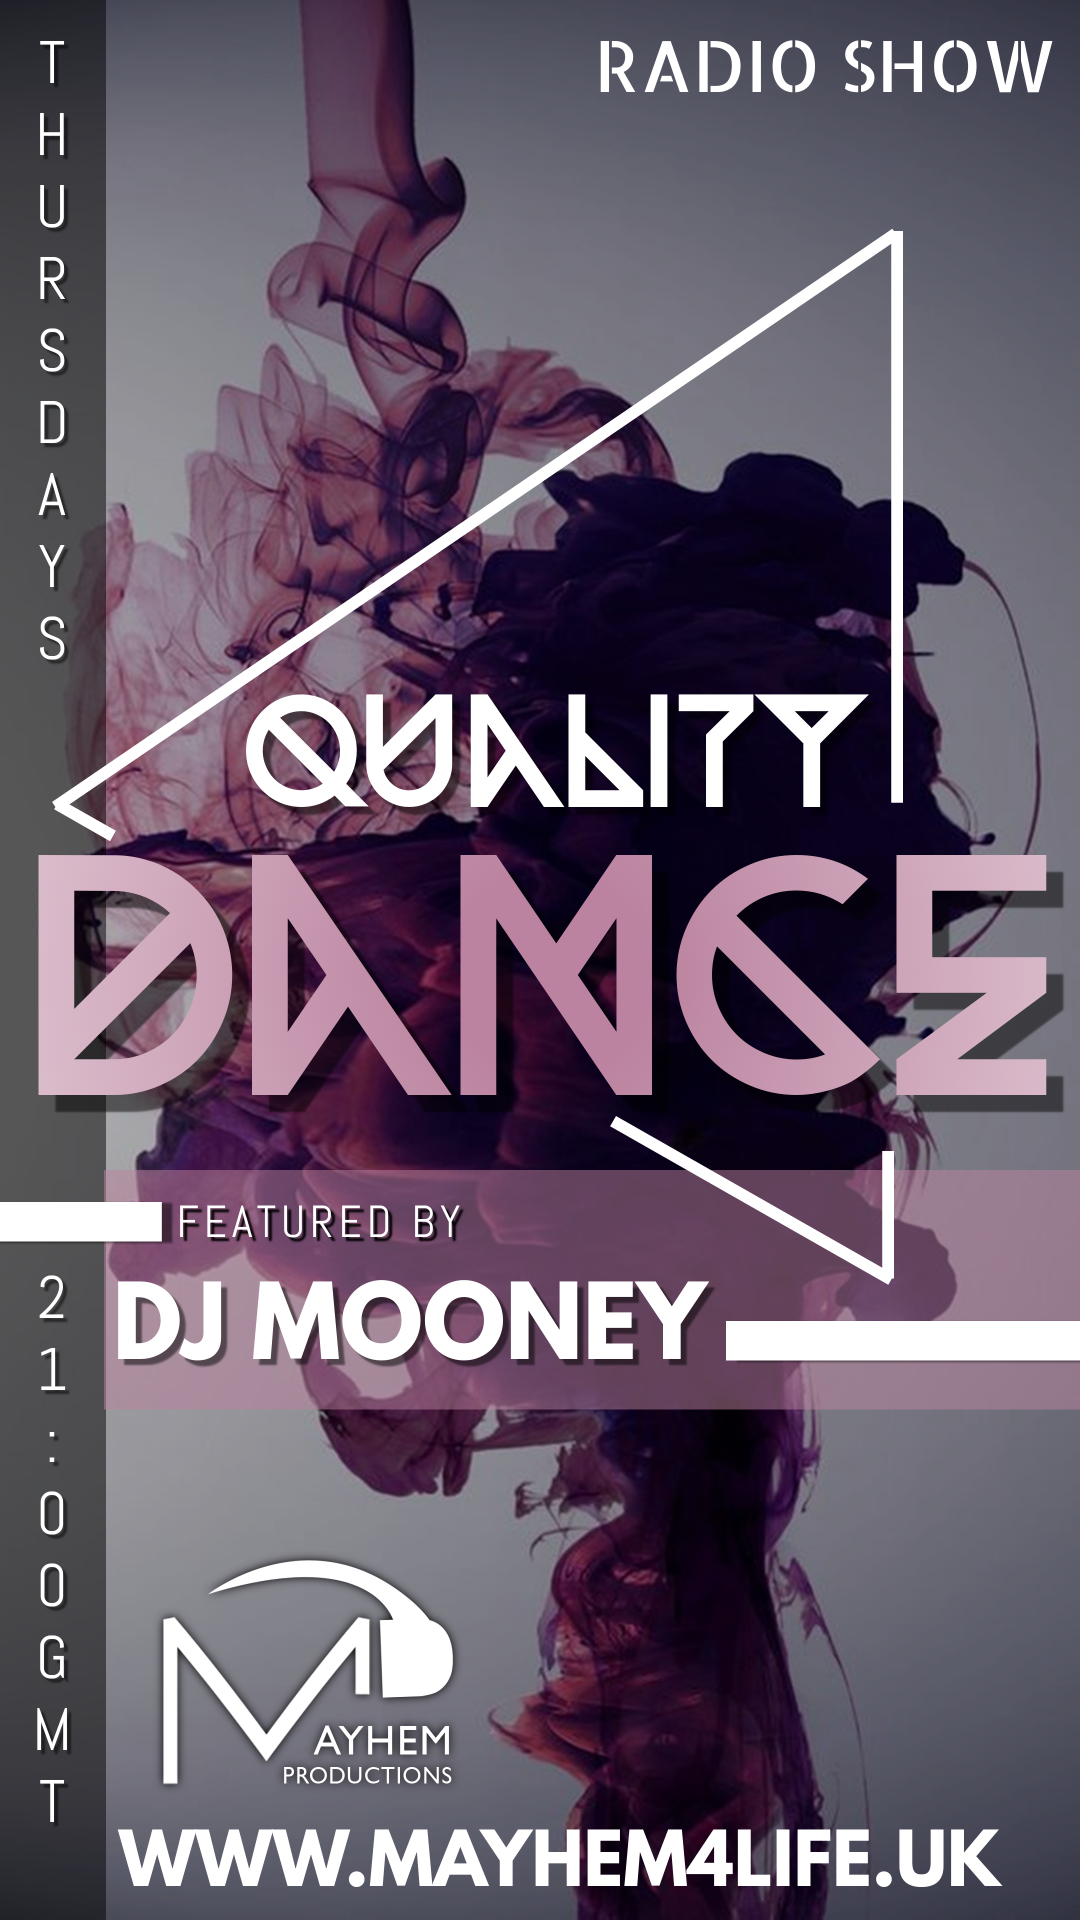 The Quality Dance Radio Show